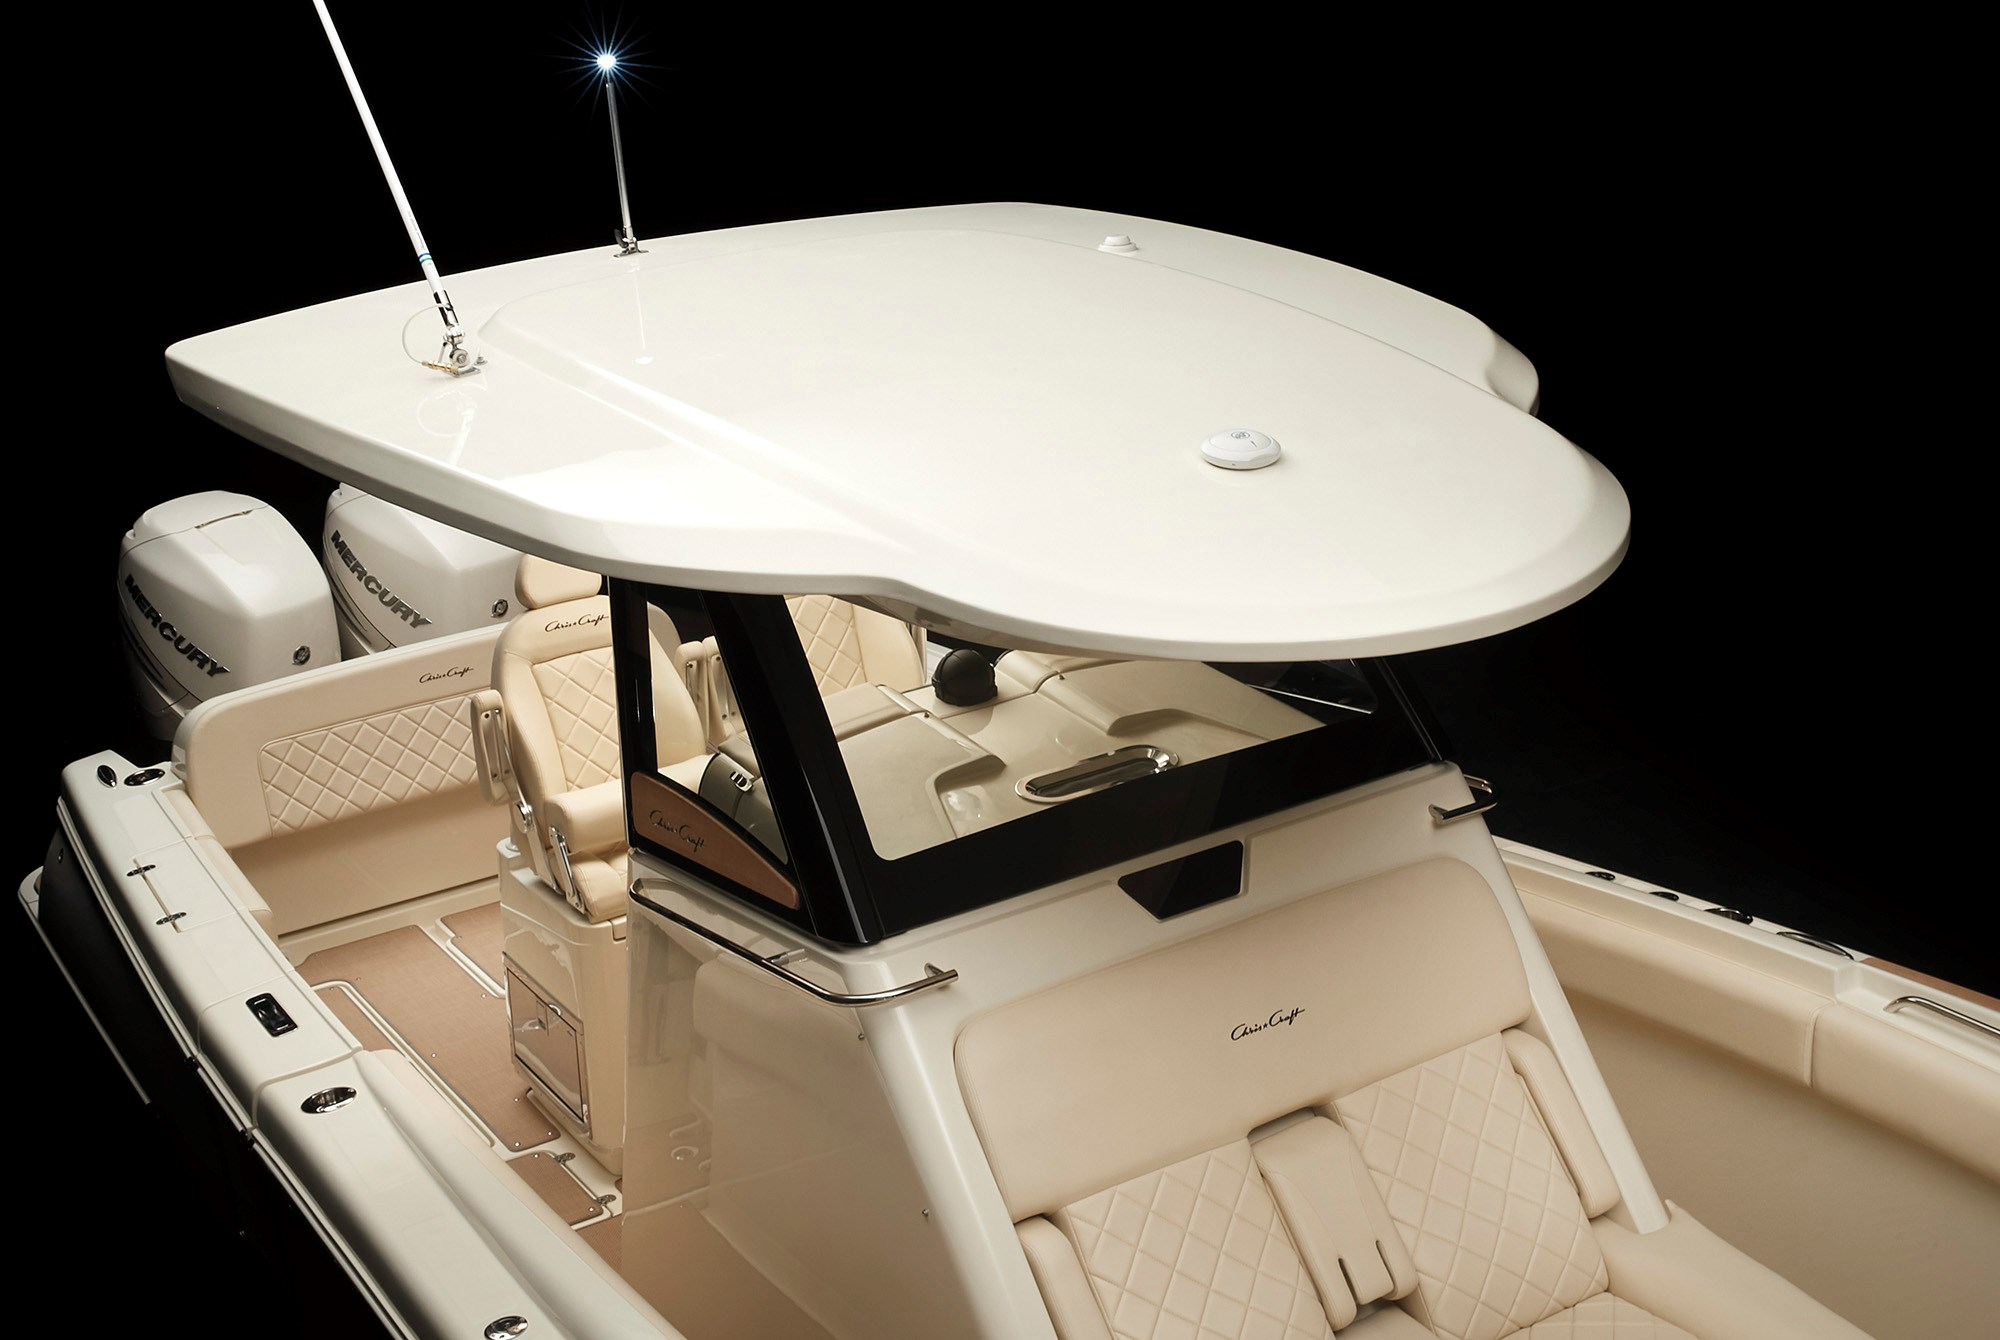 Catalina 30 Pilothouse Chris Craft Boats Deck Boat Wiring Diagram Center Console Fishing Outboard